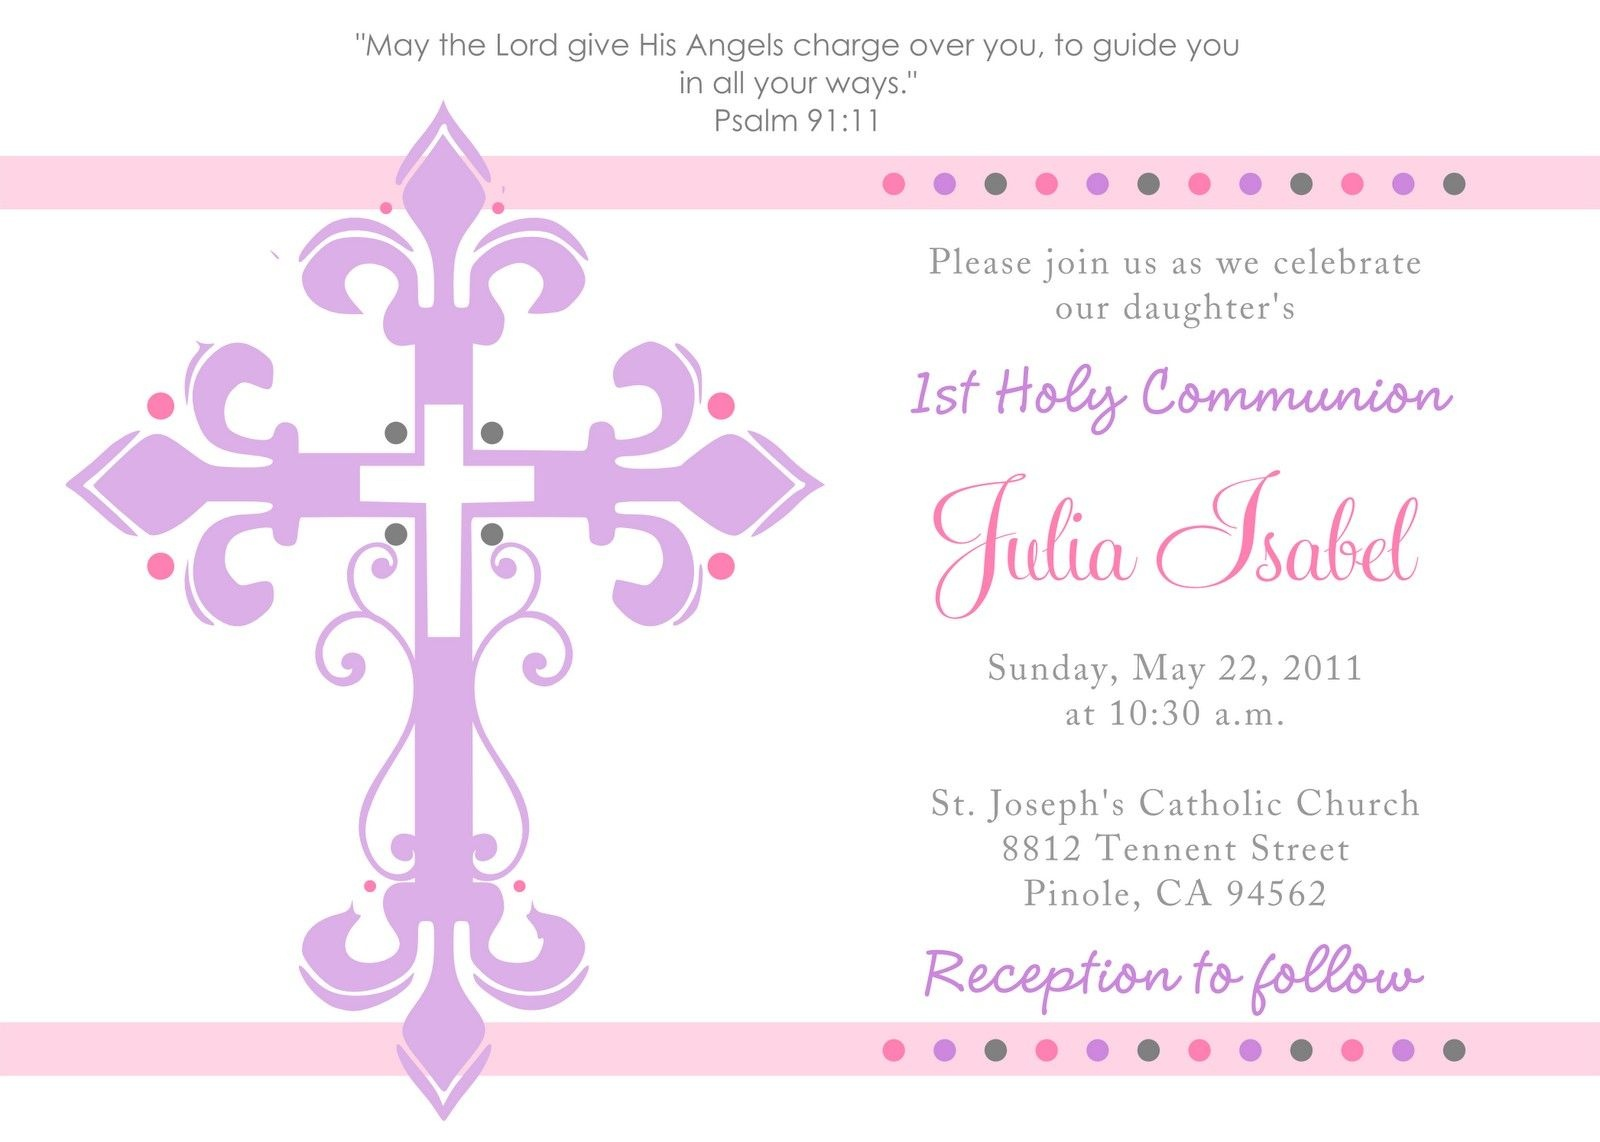 First Communion Invitations Templates - Demir.iso-Consulting.co - Free Printable First Communion Invitation Templates